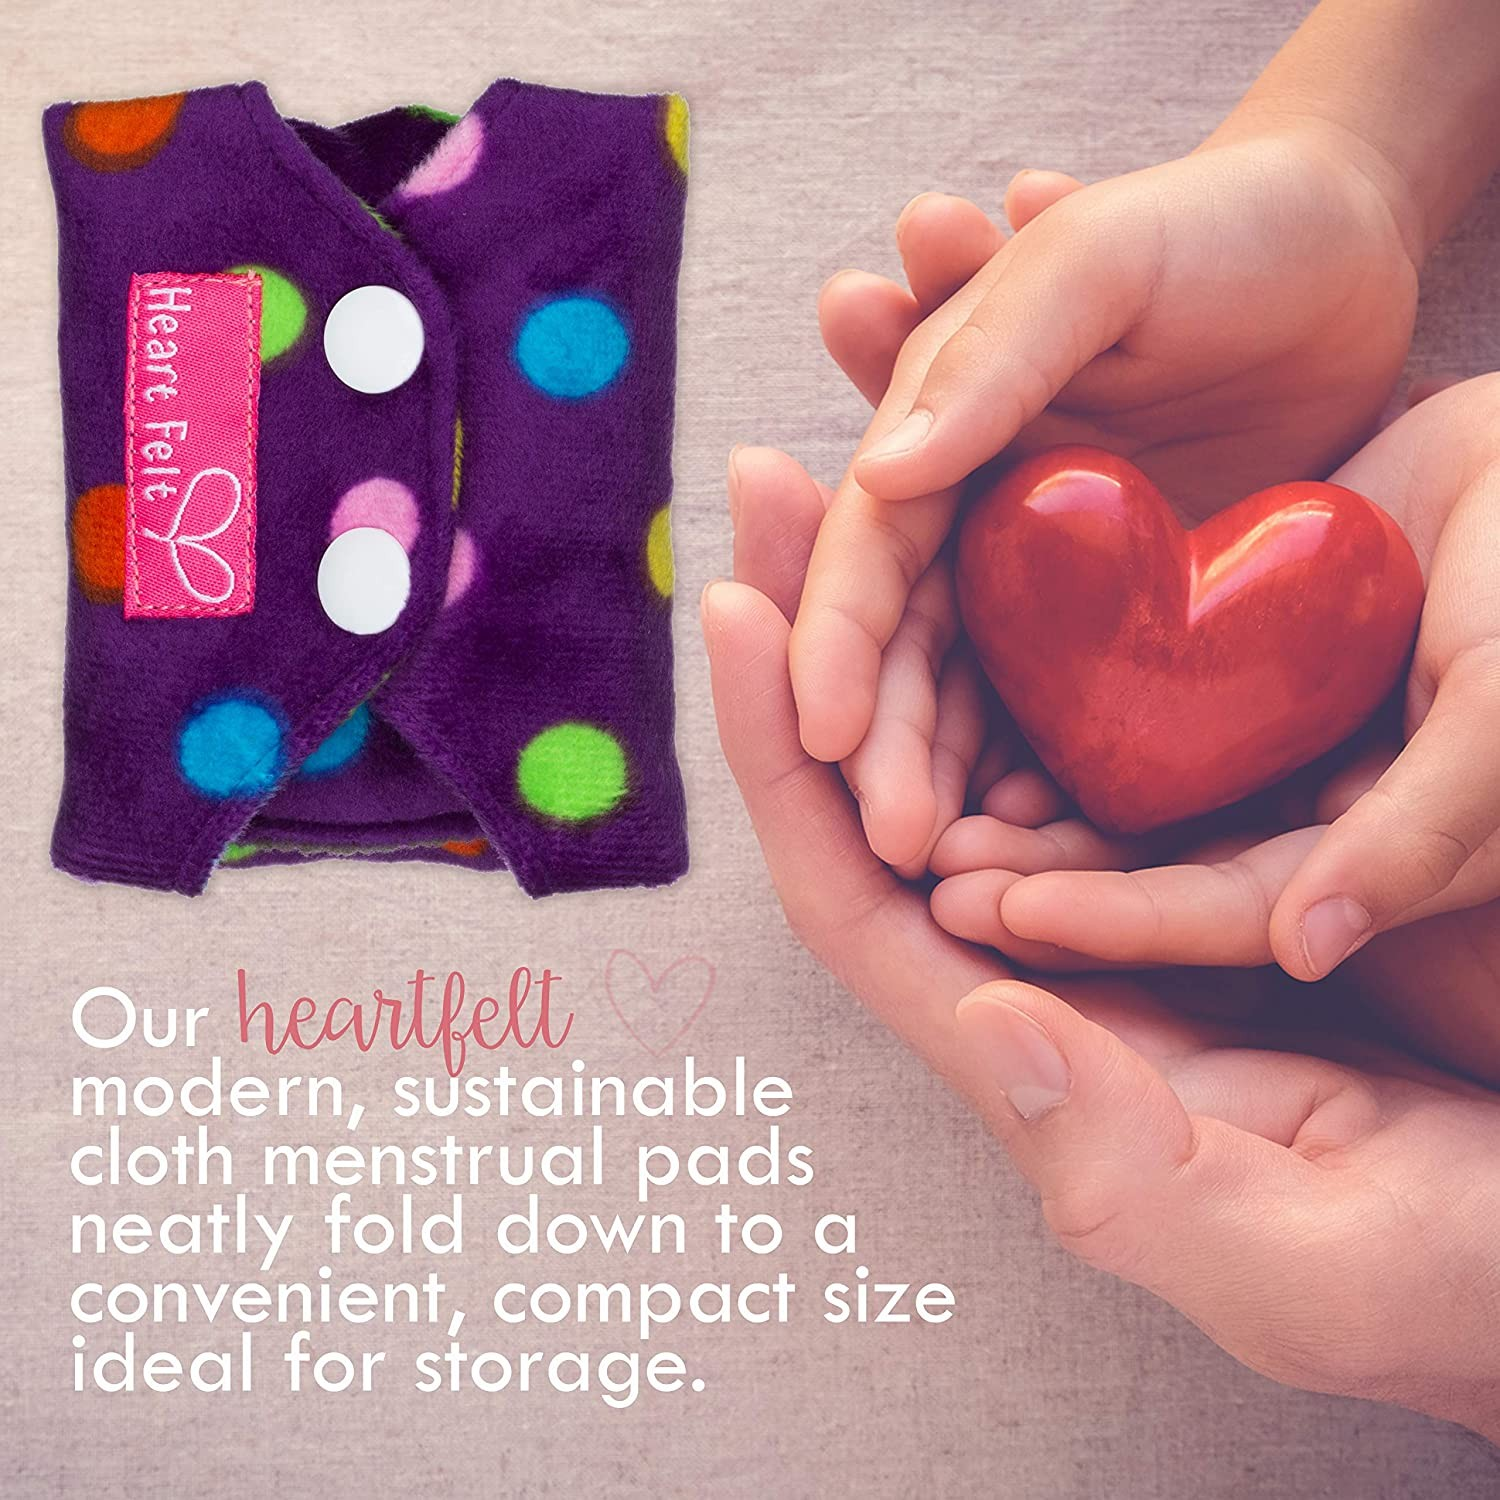 Sanitary Reusable Cloth Menstrual Pads by Heart Felt Manufacturers, Sanitary Reusable Cloth Menstrual Pads by Heart Felt Factory, Supply Sanitary Reusable Cloth Menstrual Pads by Heart Felt